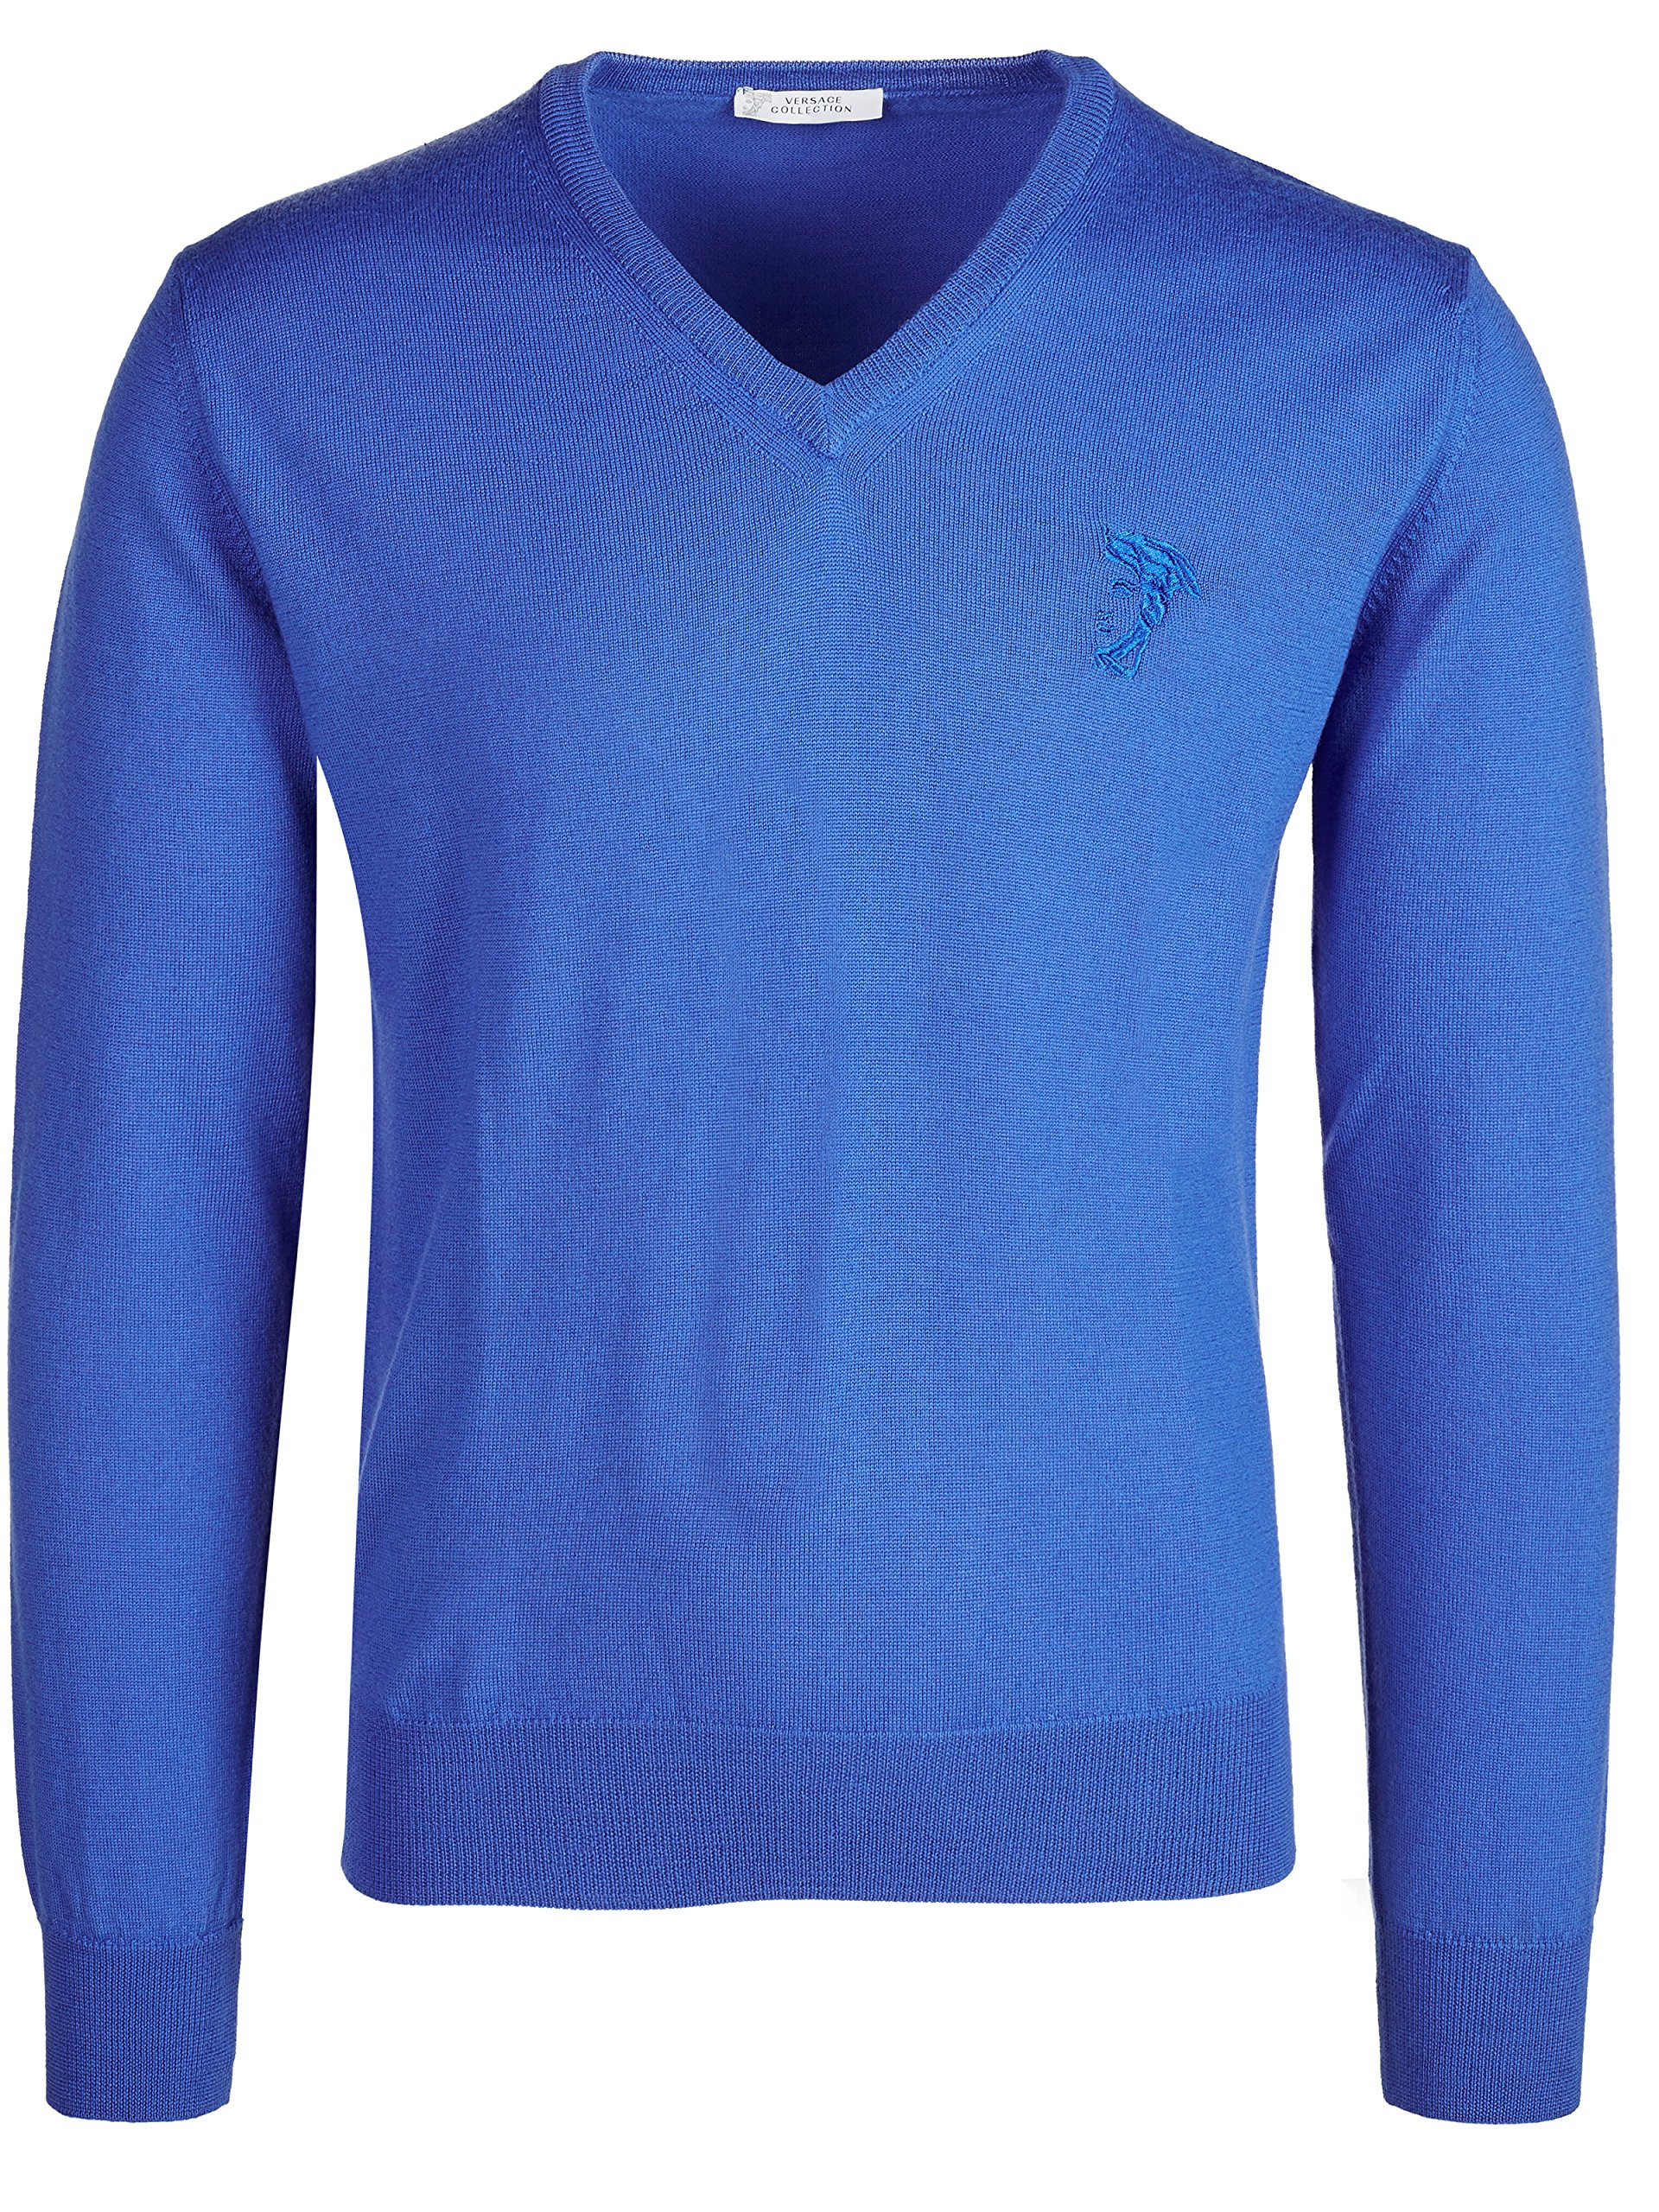 Versace Collection Medium Blue V-neck Wool Sweater (S)